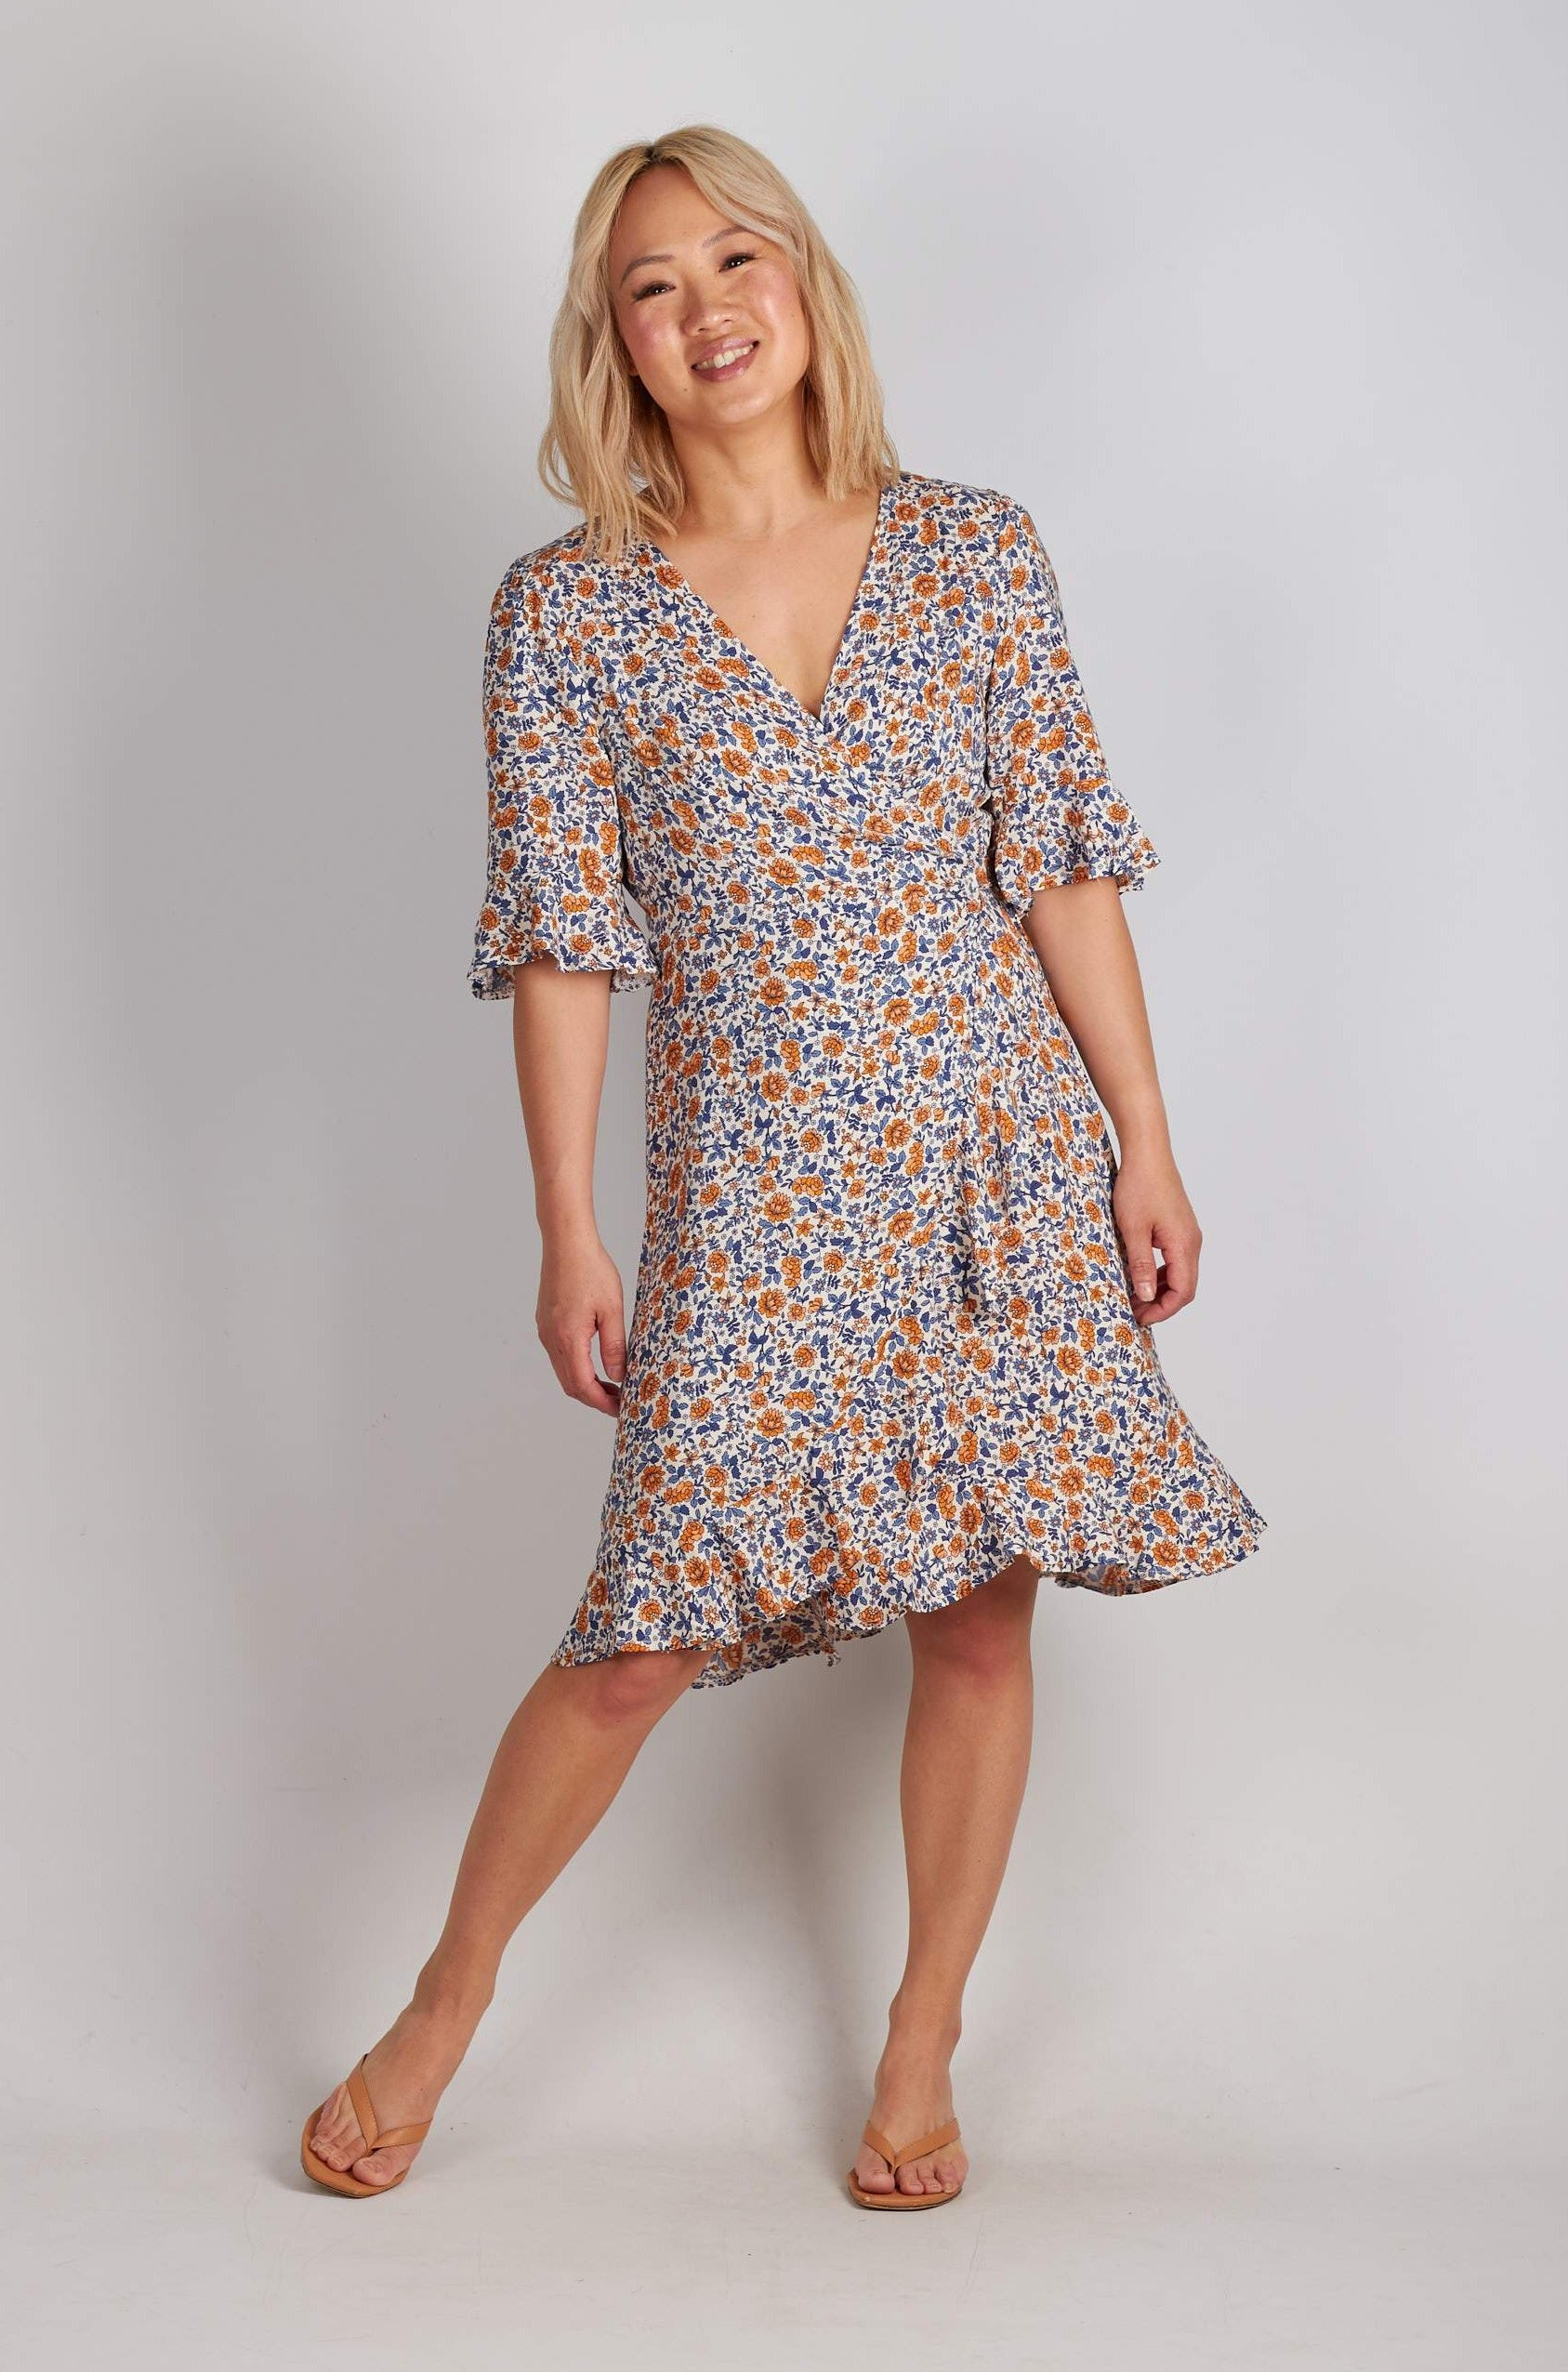 White & blue ditzy floral wrap mini dress with ruffle hem and short sleeves.